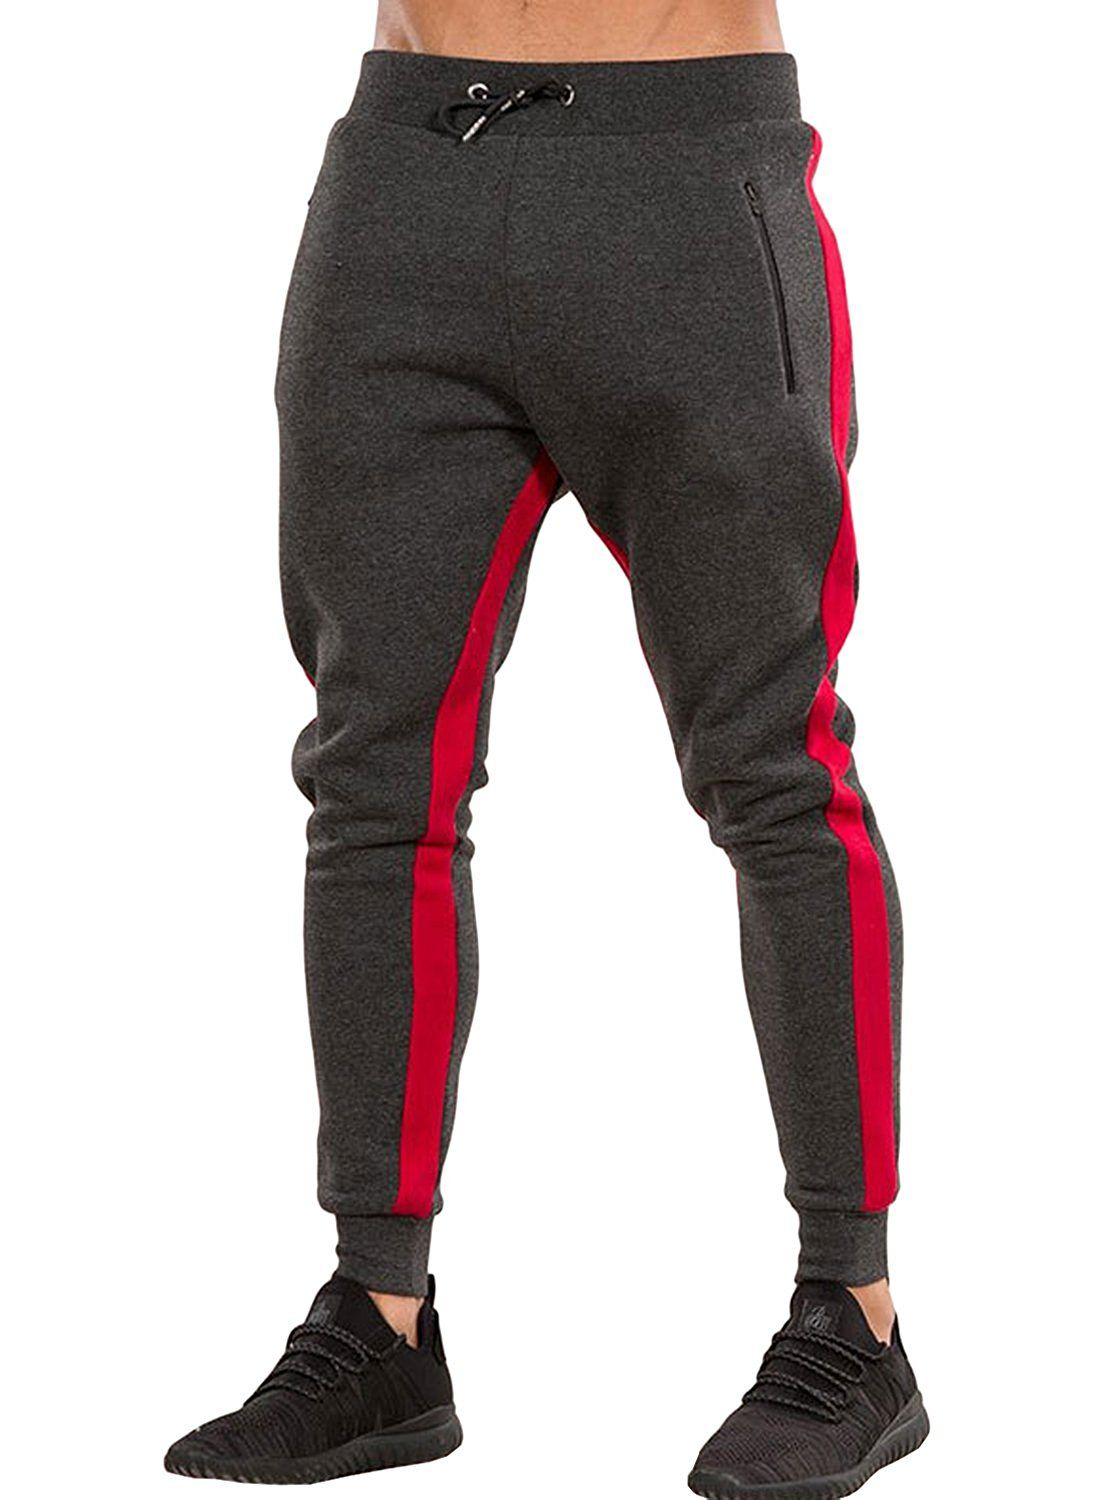 4dcf94ab9251 Amazon.com  Ouber Men s Gym Jogger Pants Slim Fit Workout Running Sweatpants  with Zipper Pockets  Clothing